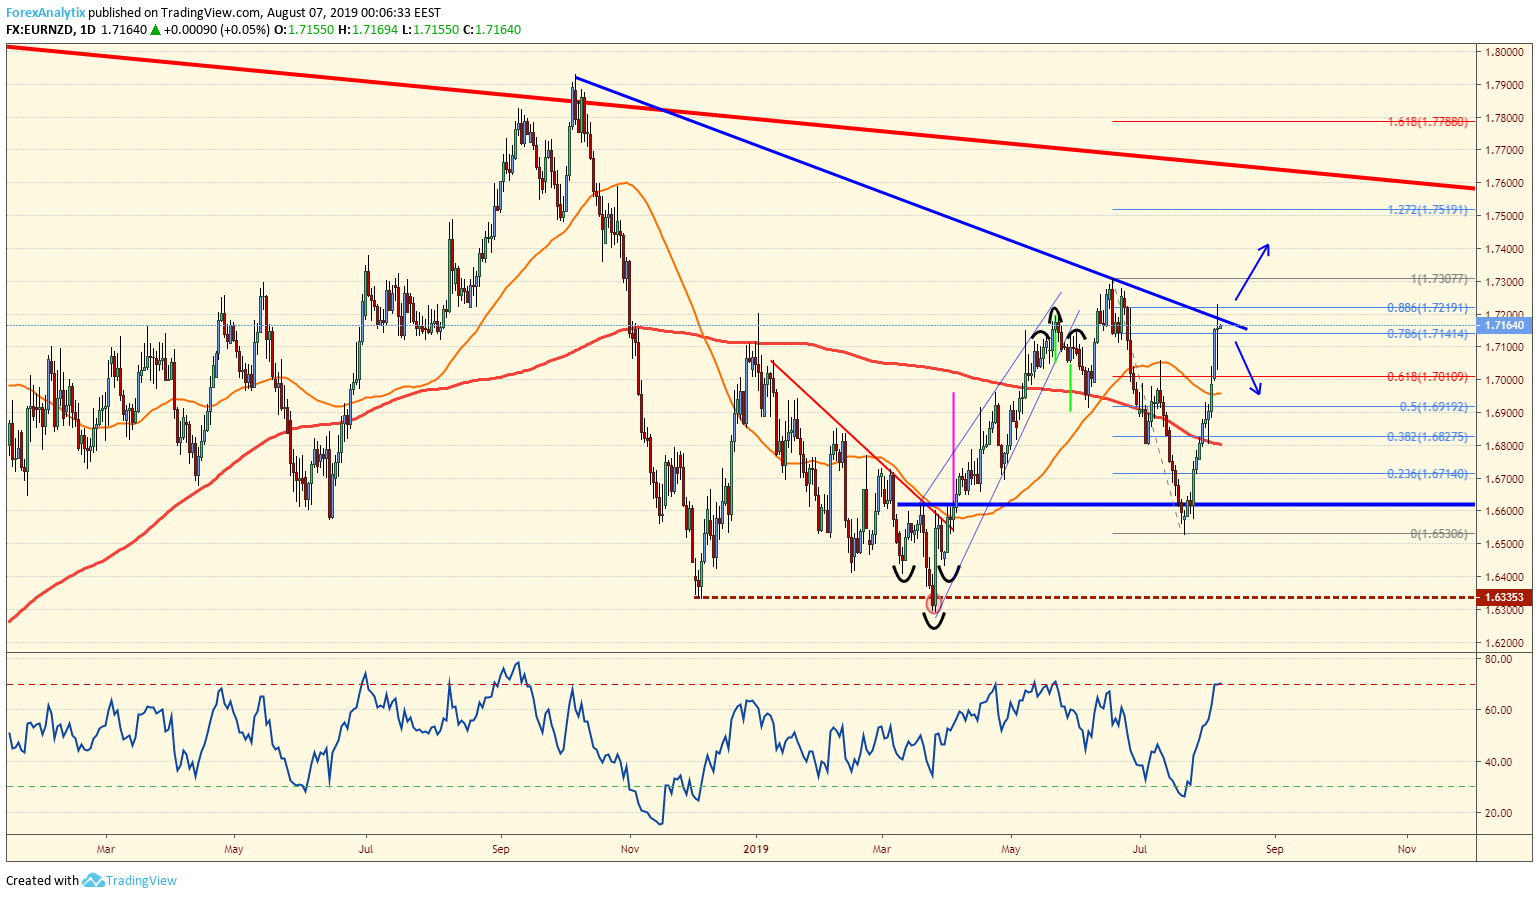 EURNZD at T/L Resistance